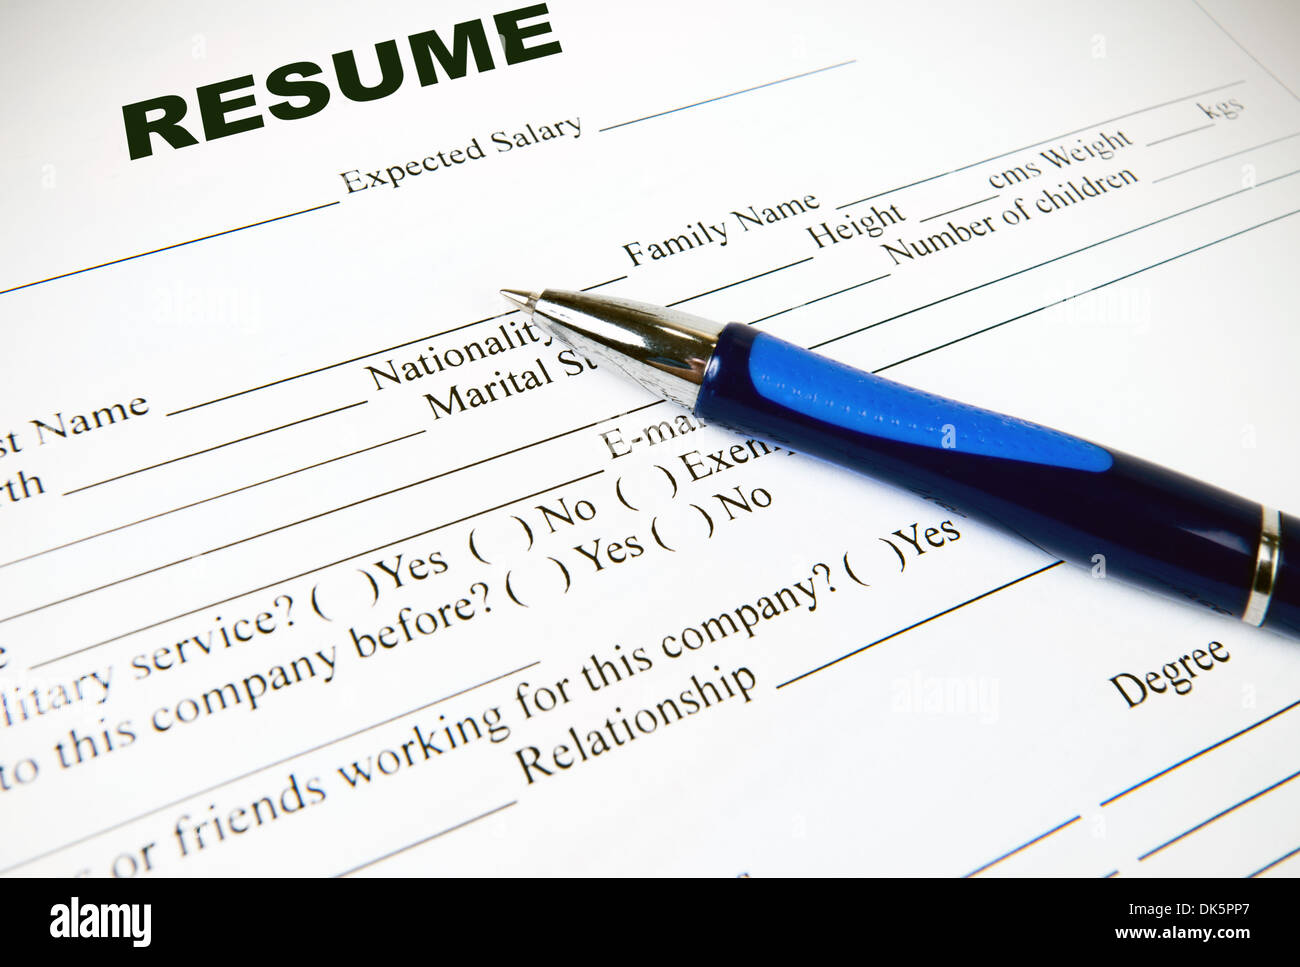 Resume Application Paper Form On White Stock Photo 63437199 Alamy